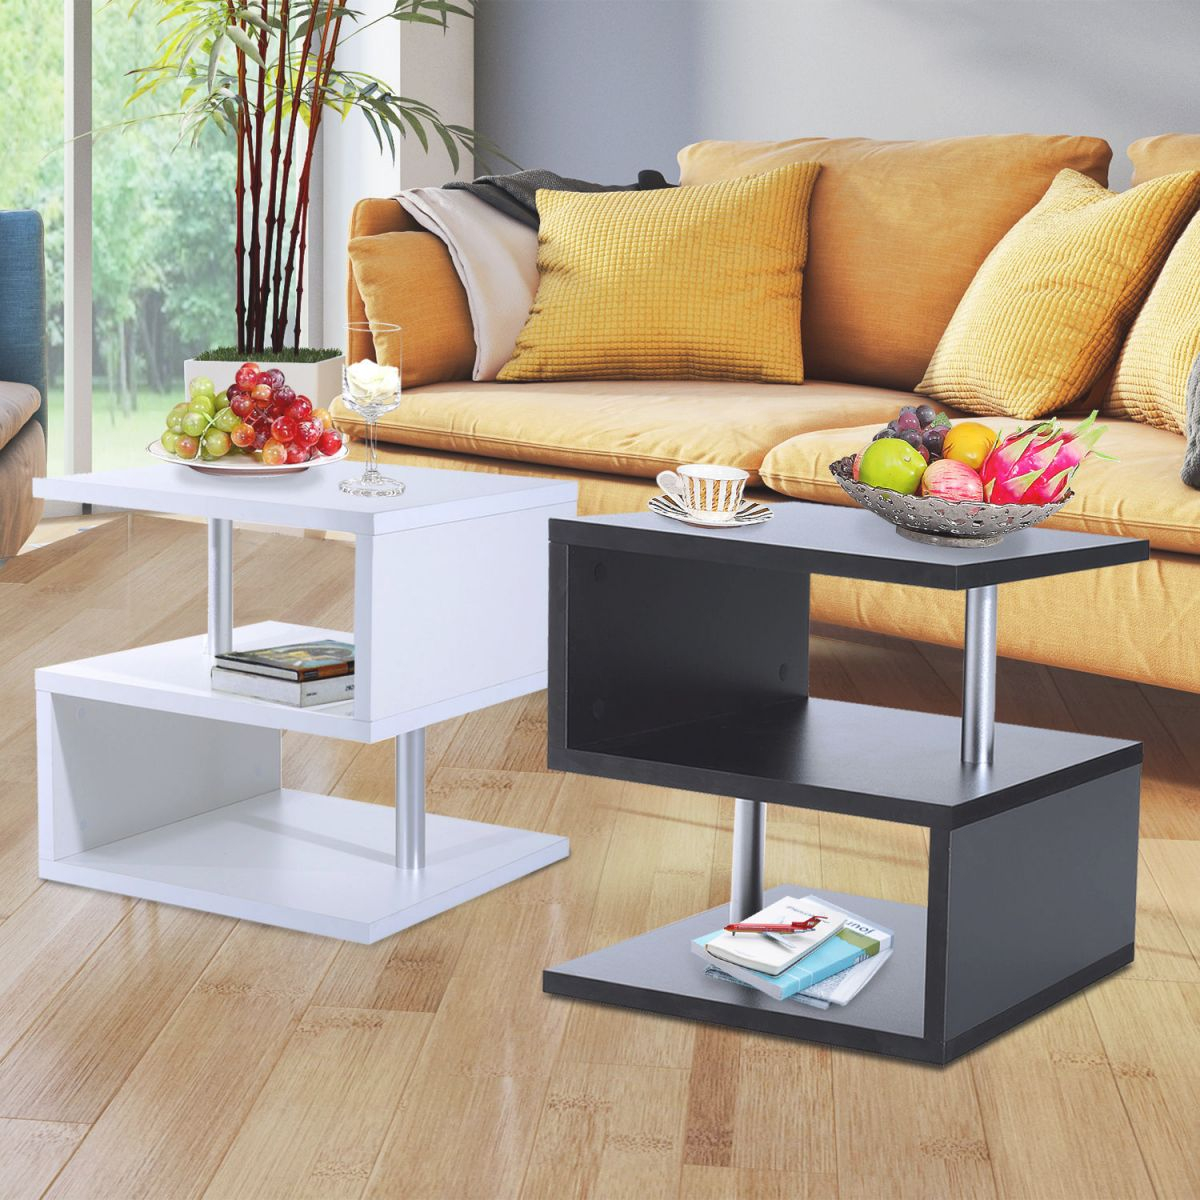 Details About Modern Coffee Table Side End Table 2 Shelf Storage Living Room Furniture for Living Room Furniture Tables